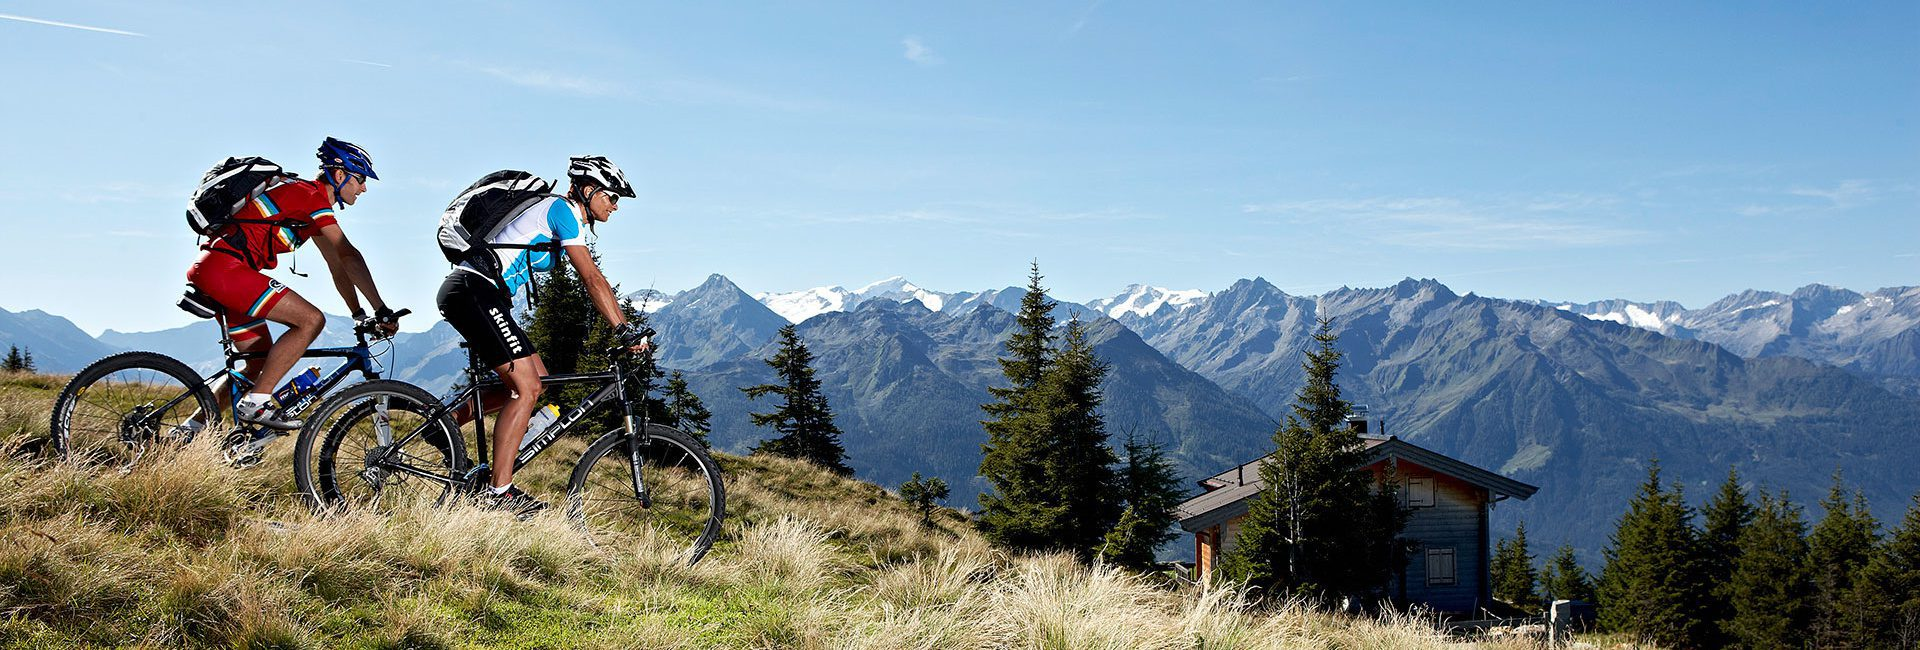 Mountainbiken in Bramberg - Wildkogel, Salzburger Land